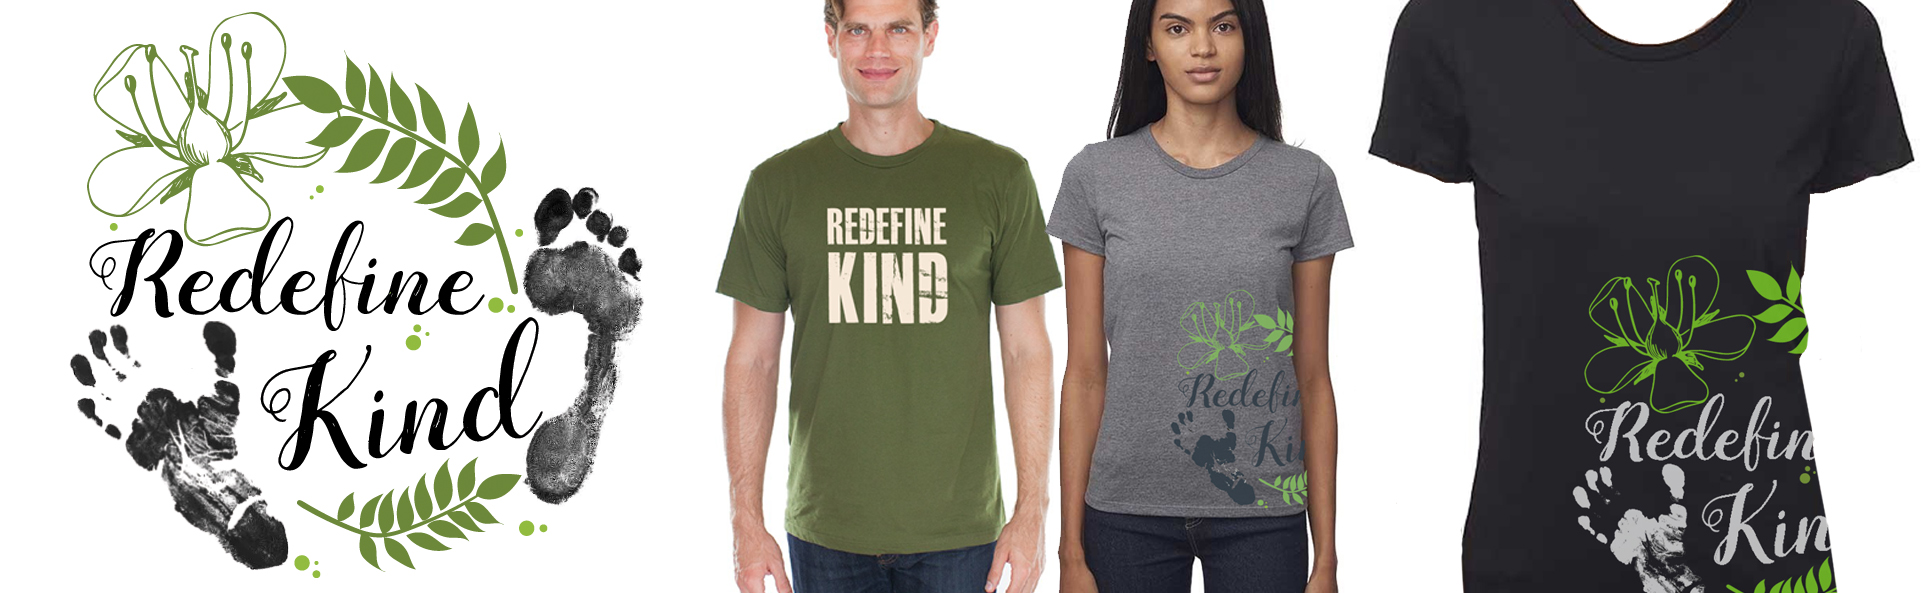 Shop Our Redefine Kind Shirts